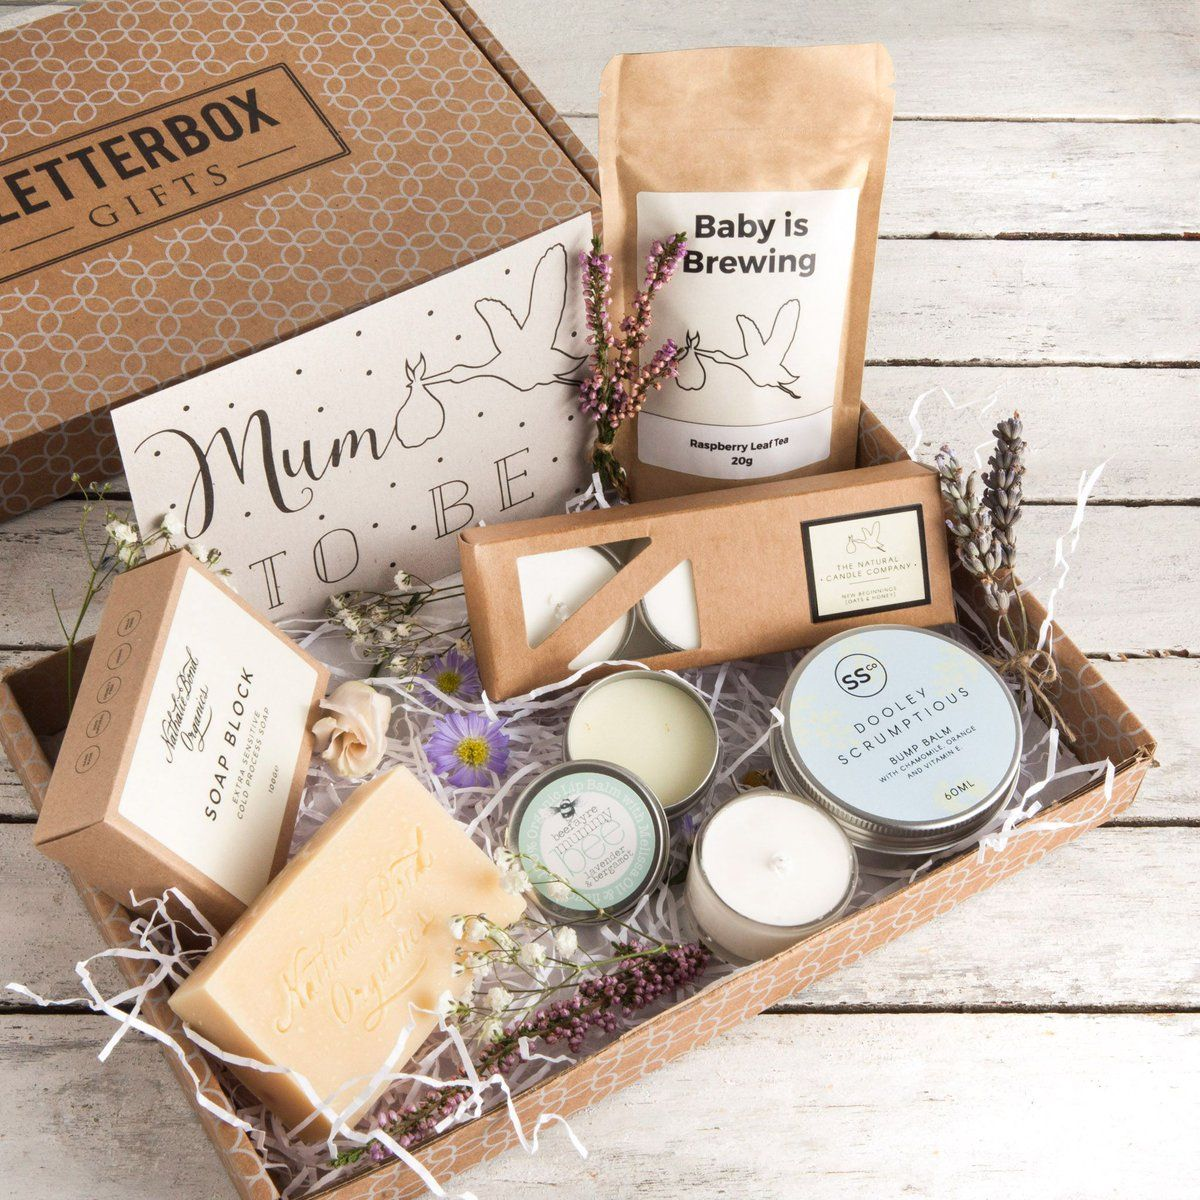 Custom Cosmetic Boxes - guest post, blog post at letsaskme